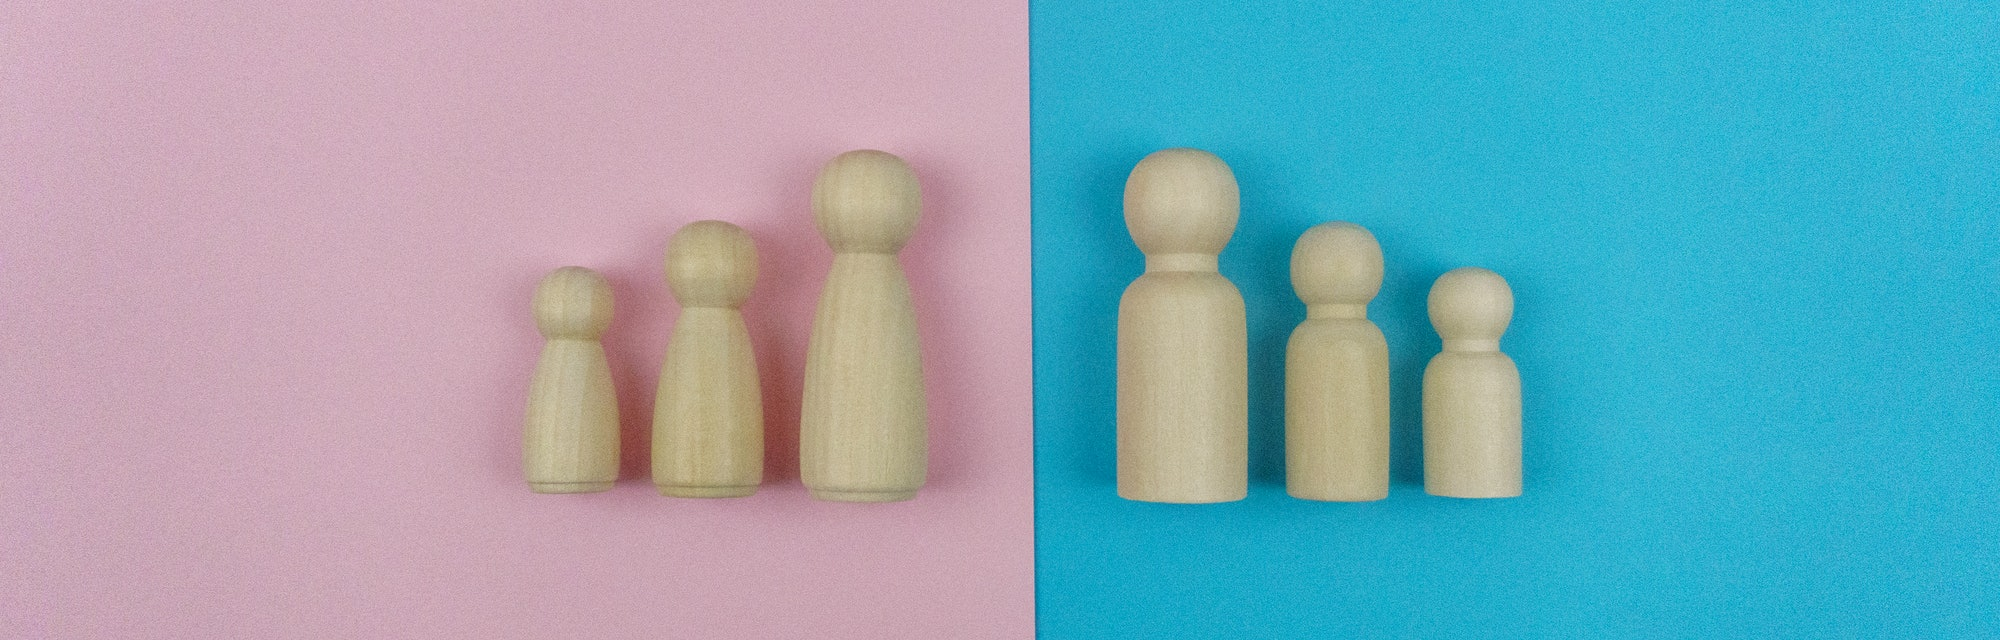 Still life image, Wooden figures family of four on Blue and Pink background.